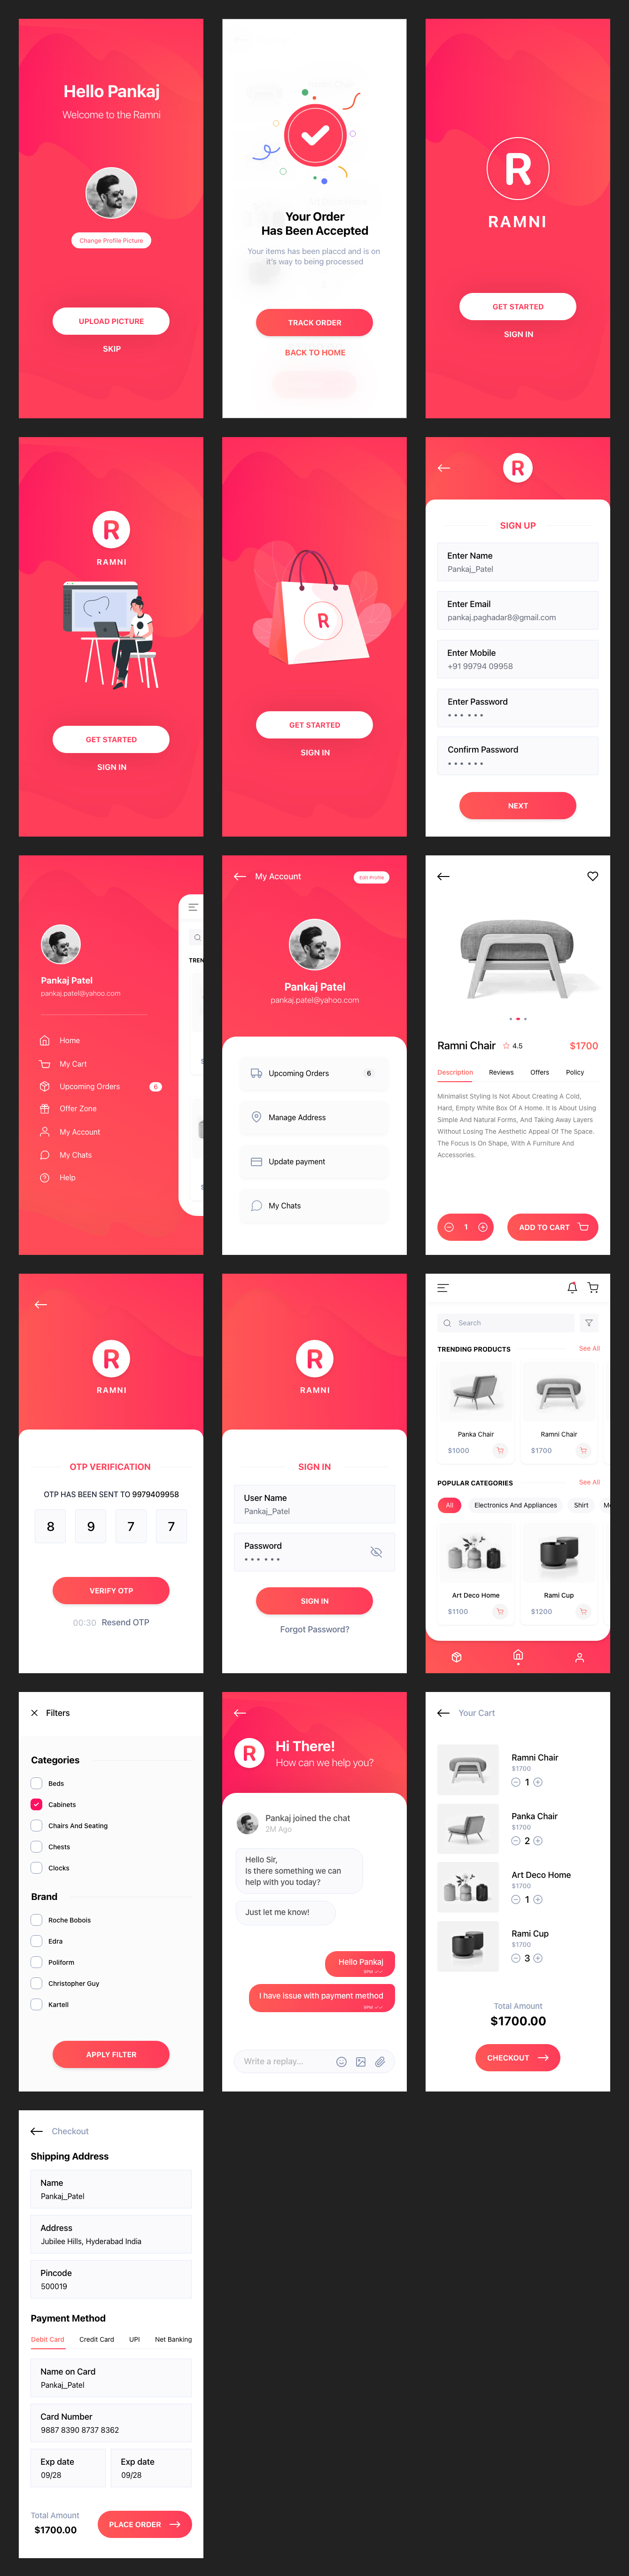 Ramni - Free eCommerce UI Kit for Adobe XD - A multipurpose UI KIT for all Mobile Apps, designed with classic design style without leaving a shopping feel. Suitable for all businesses or startups that provide services. Modifying the template is quite simple